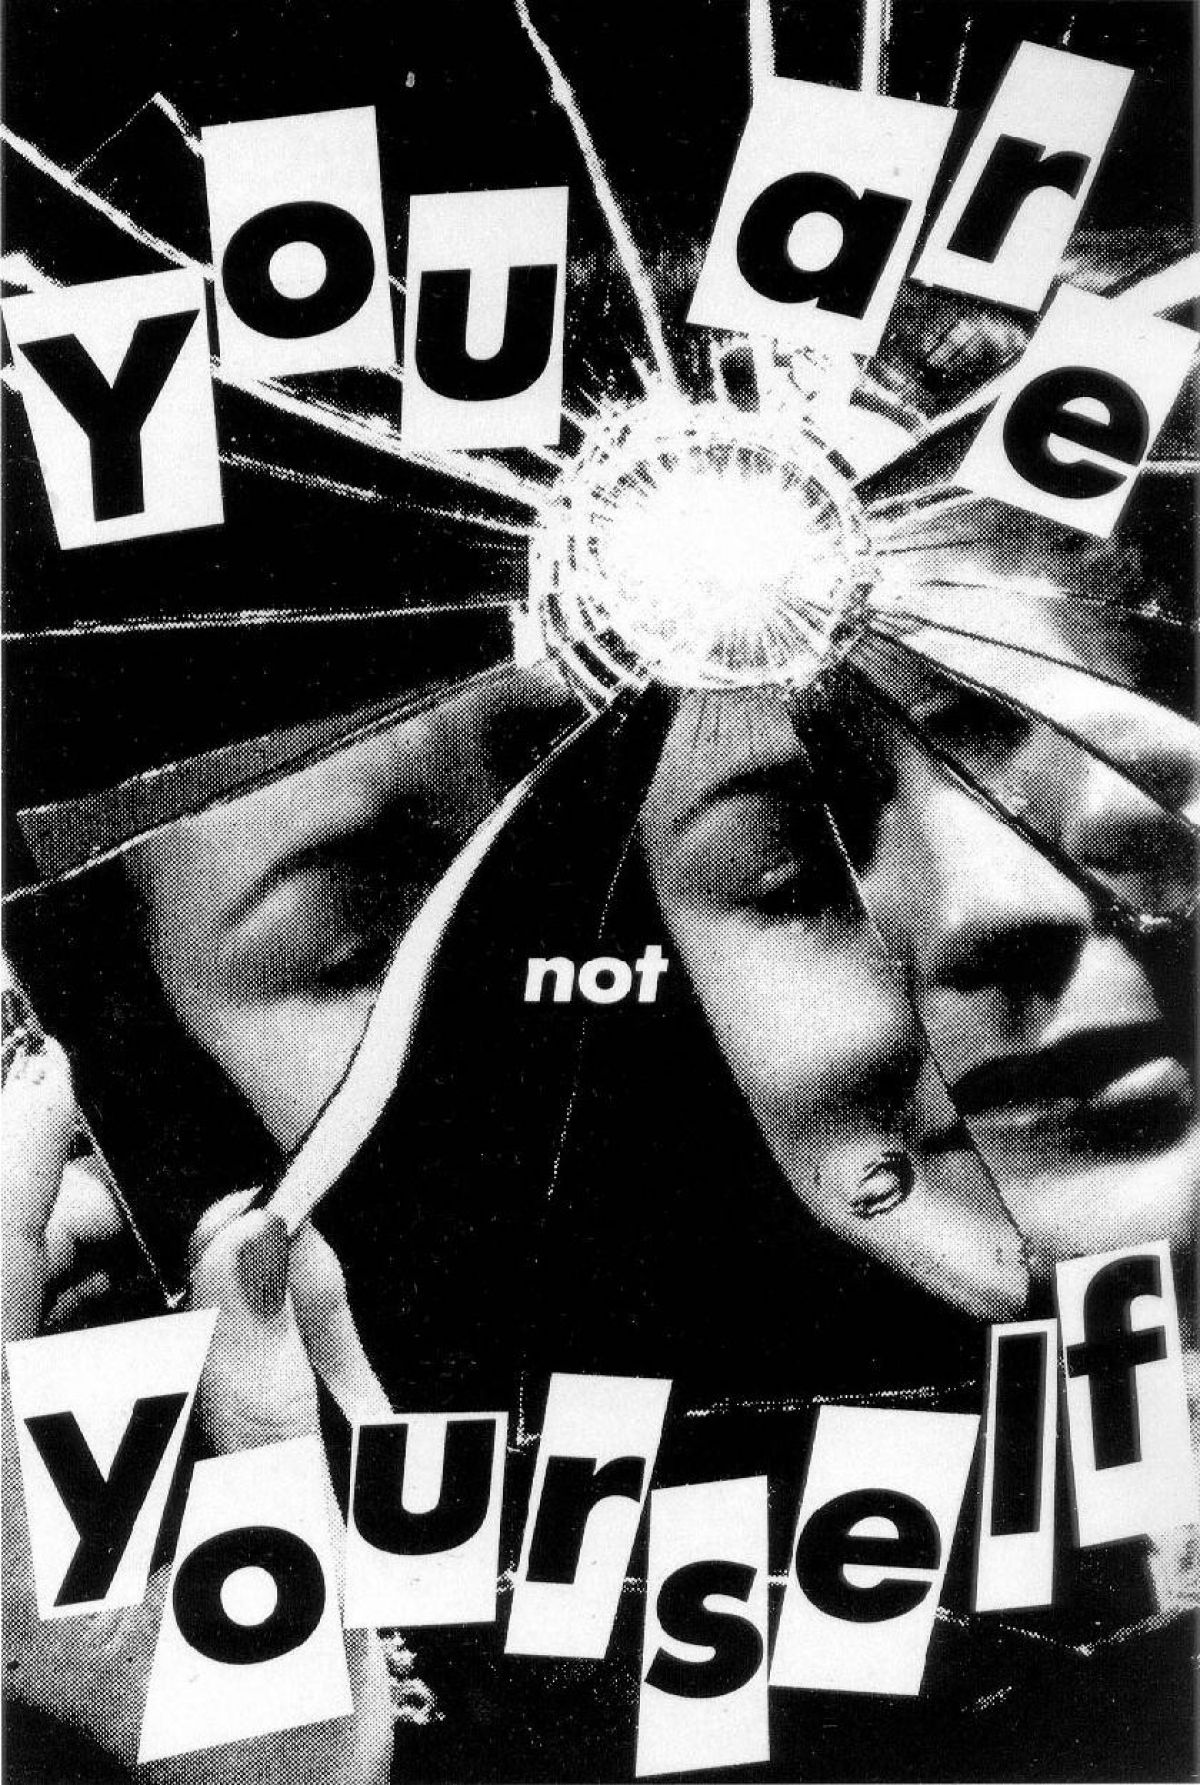 You are not yourself, Barbara Kruger, 1981